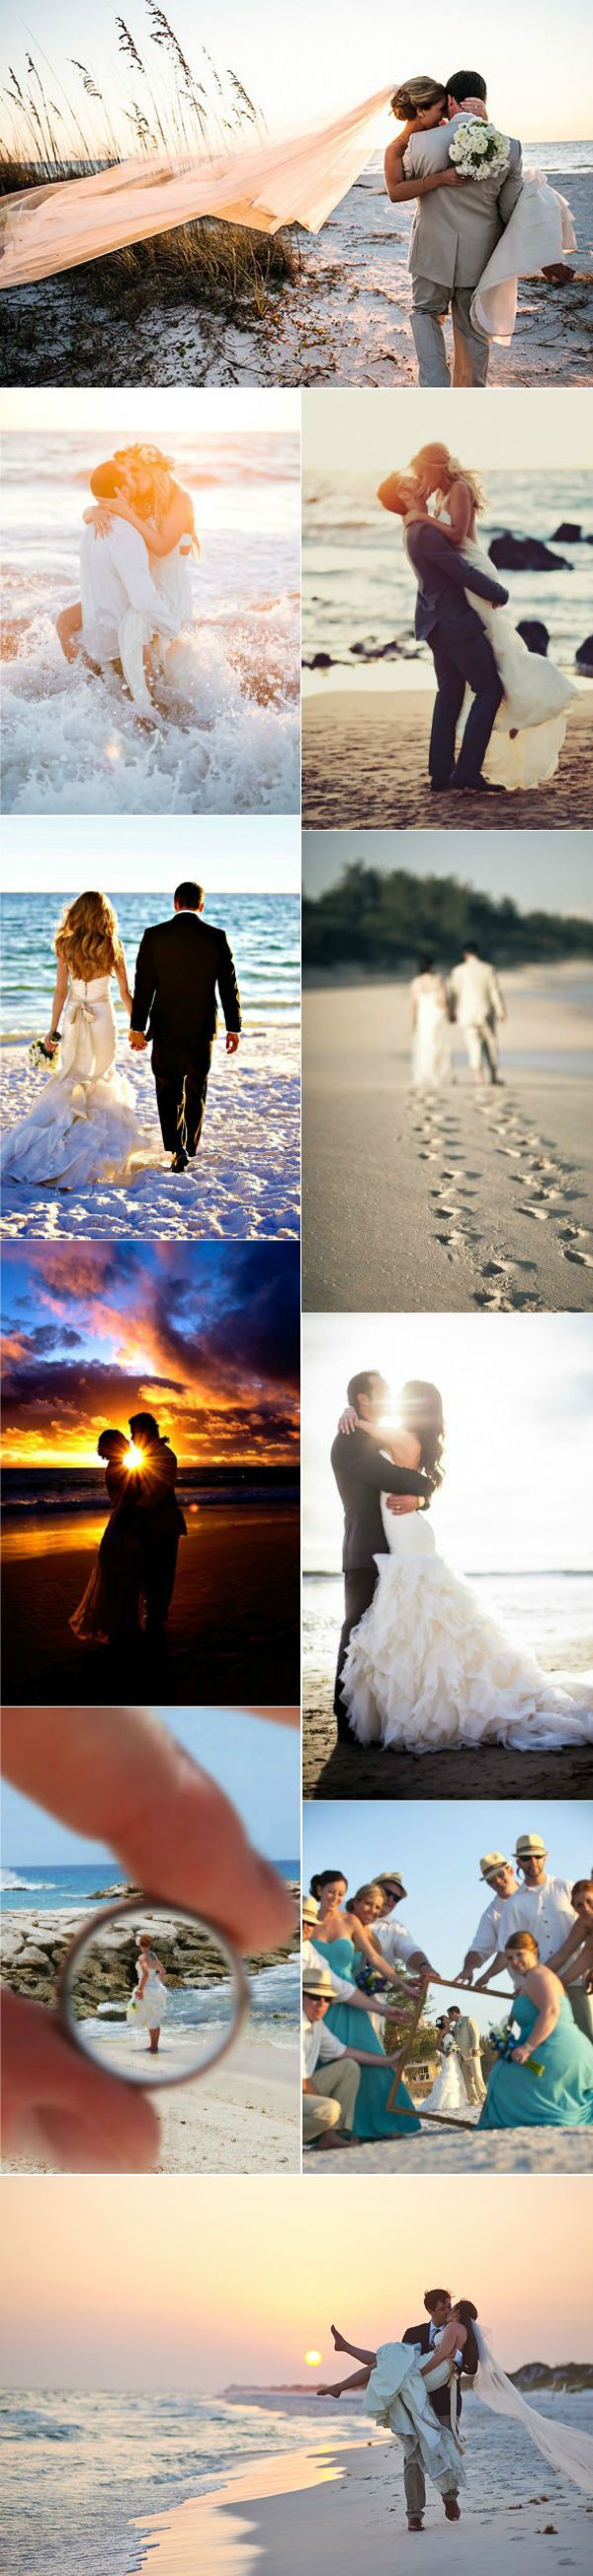 romantic beach themed wedding photo ideas